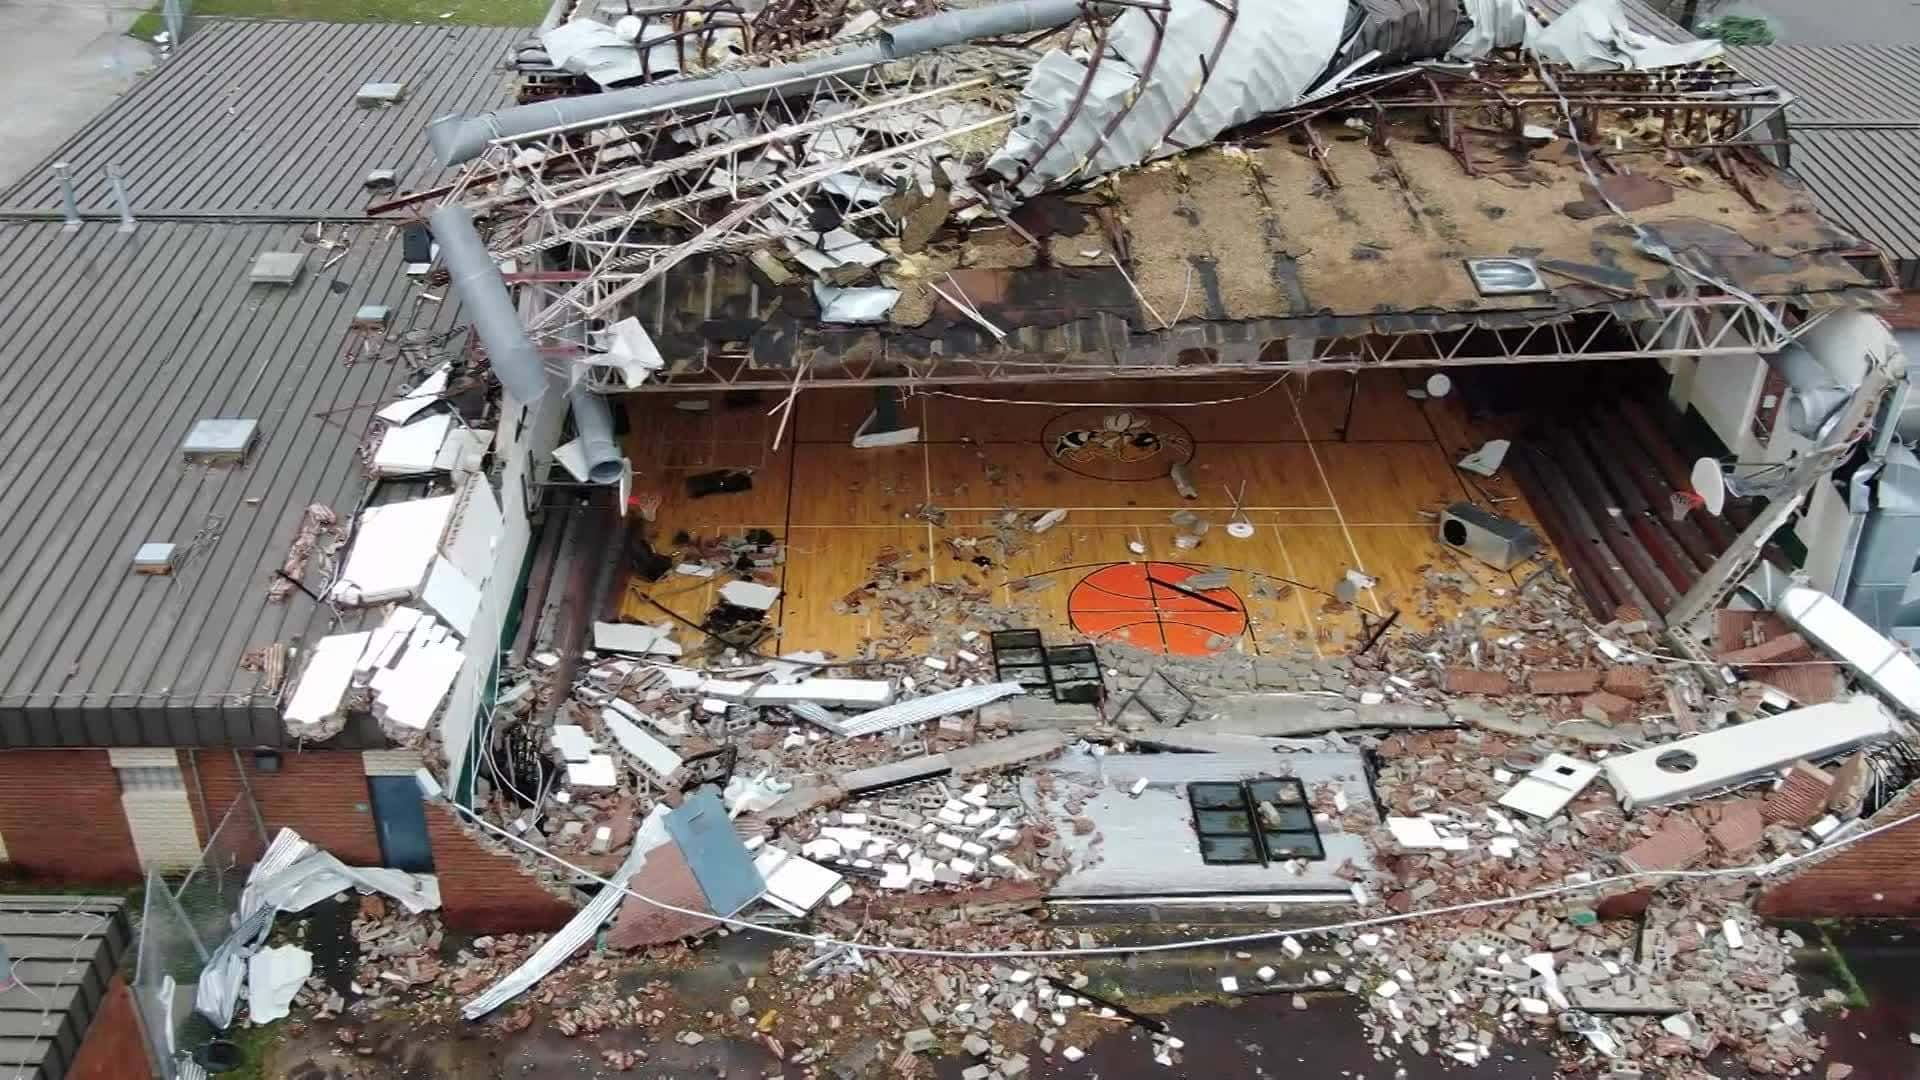 Damage_from_Hurricane_Michael_0_58587348_ver1.0-1.jpg